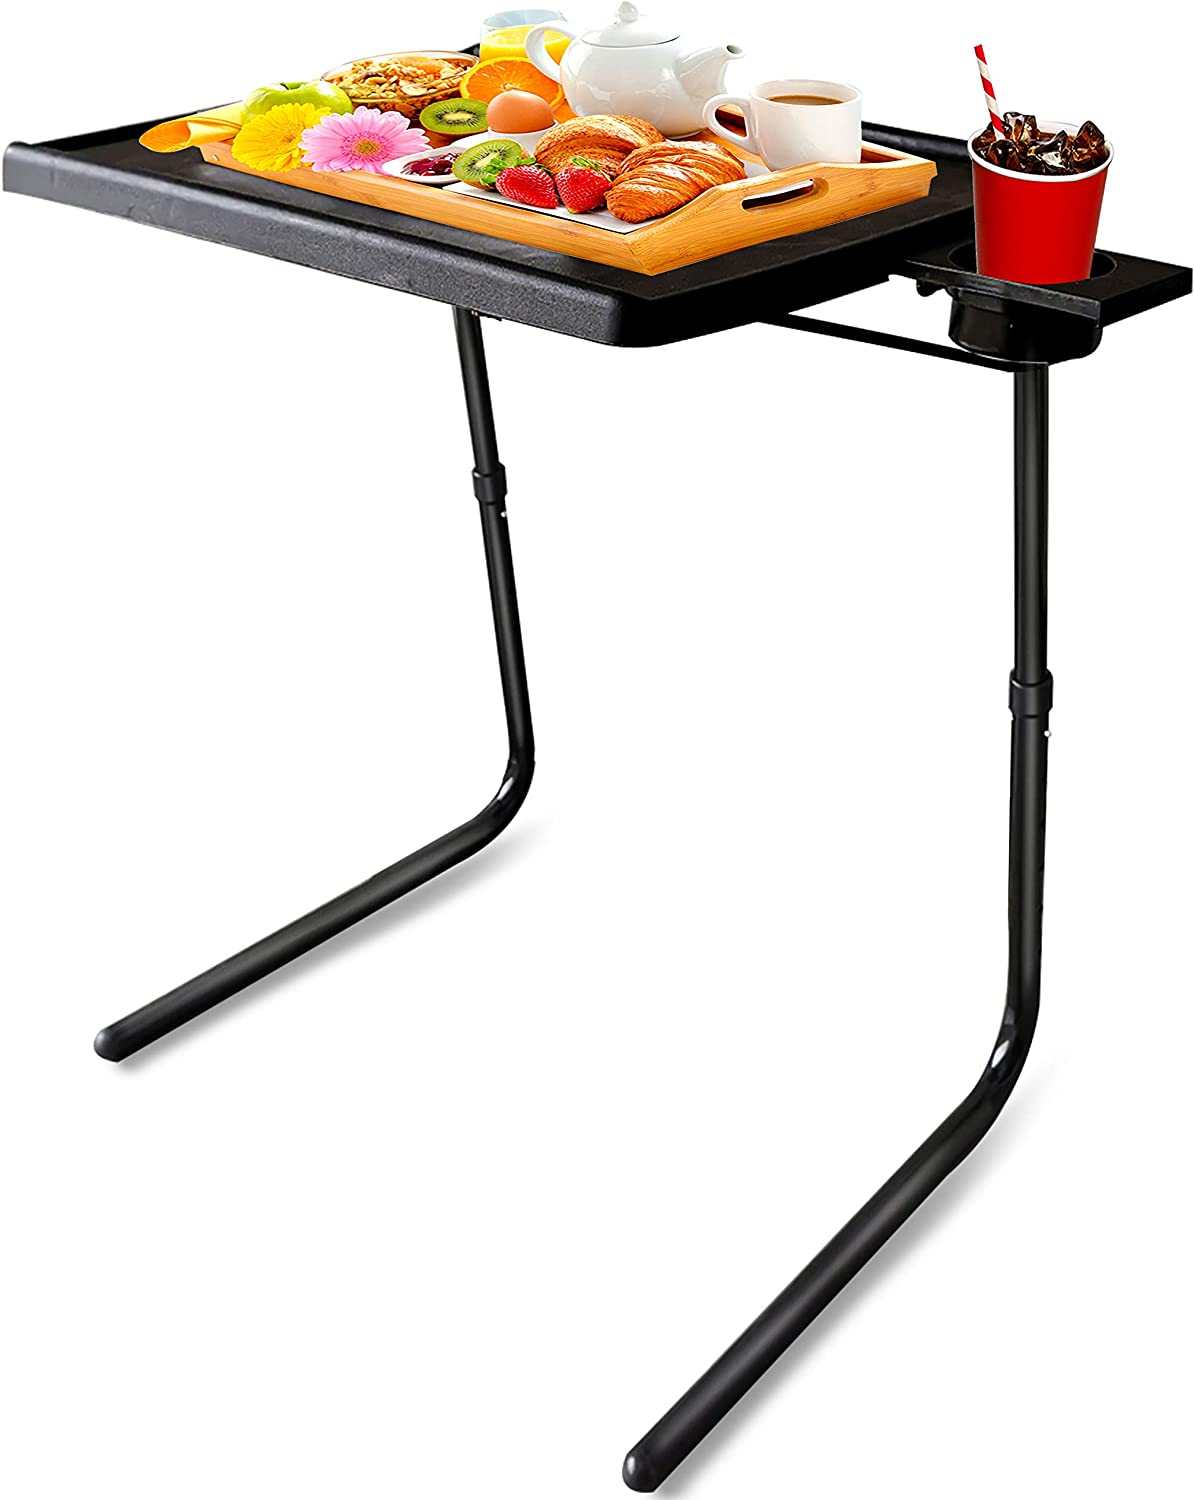 Mejerca TV Tray Table Folding TV Dinner Tray on Bed & Sofa, Comfortable Couch Desk Cup Holder Built-in with 6 Height & 3 Tilt Angle Adjustable (Black)